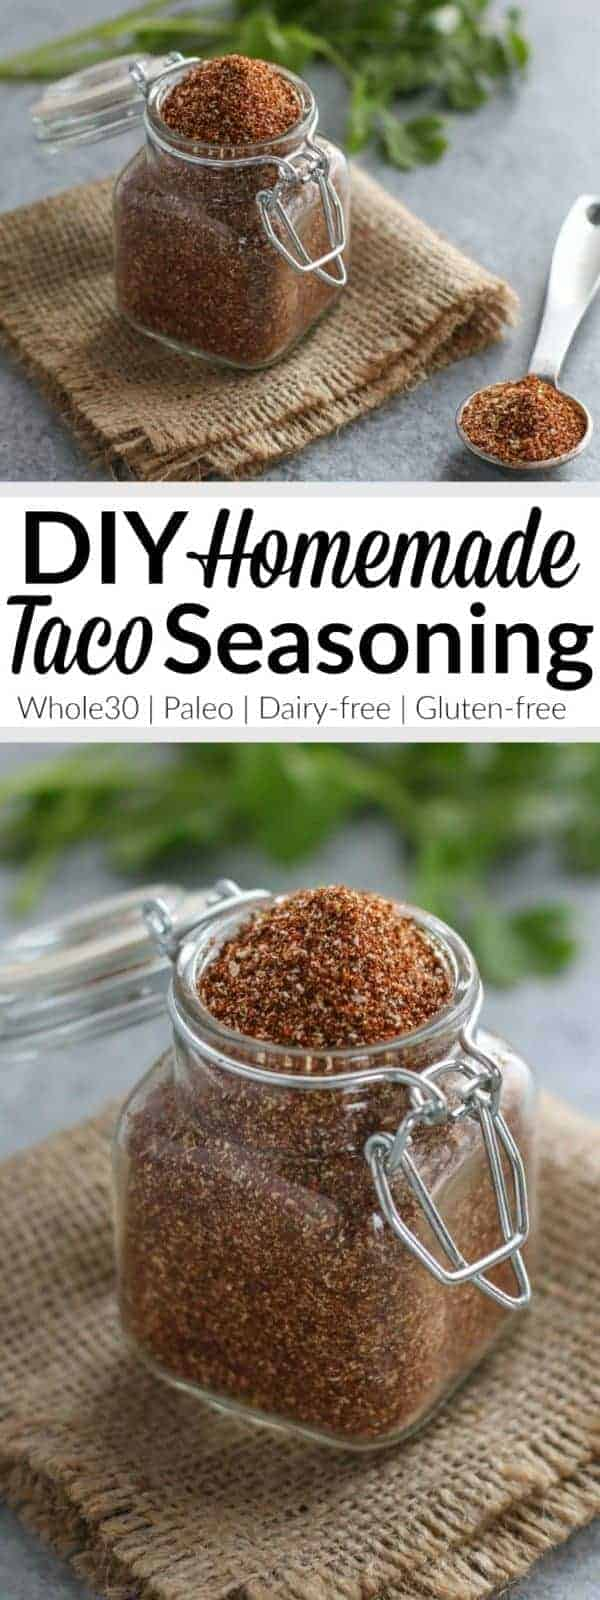 A DIY taco seasoning that's no-fuss and free of fillers, preservatives and sugar. | homemade taco seasoning recipes | whole30 seasonings | paleo seasoning recipes | dairy-free seasoning recipes | gluten-free seasoning recipes | healthy seasoning recipes || The Real Food Dietitians #healthyseasonings #tacoseasoning #whole30